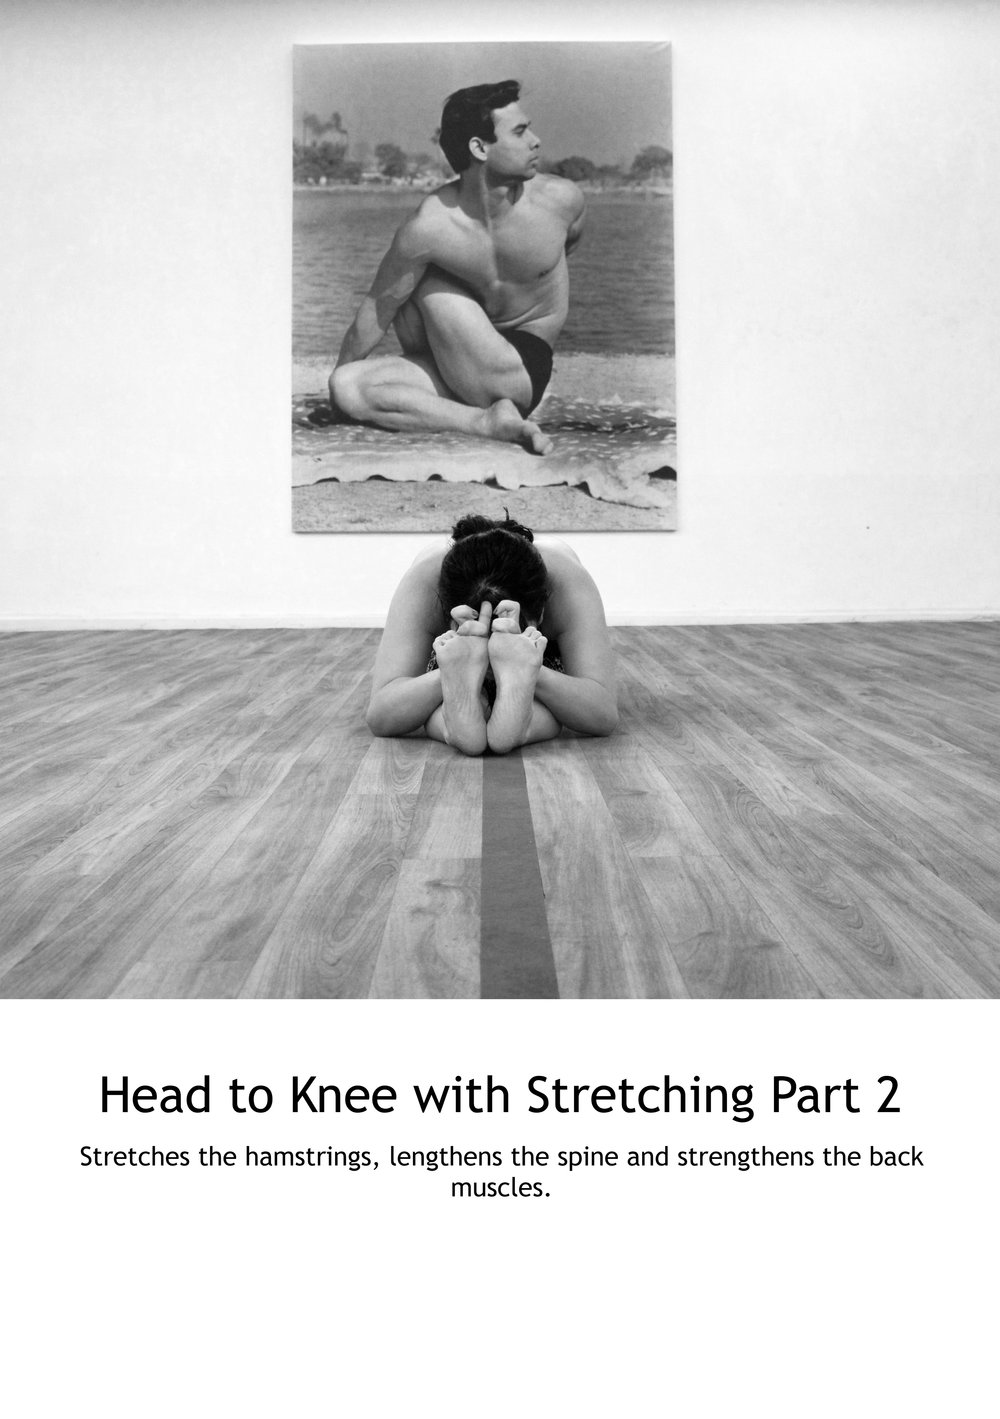 Head to Knee Stretching